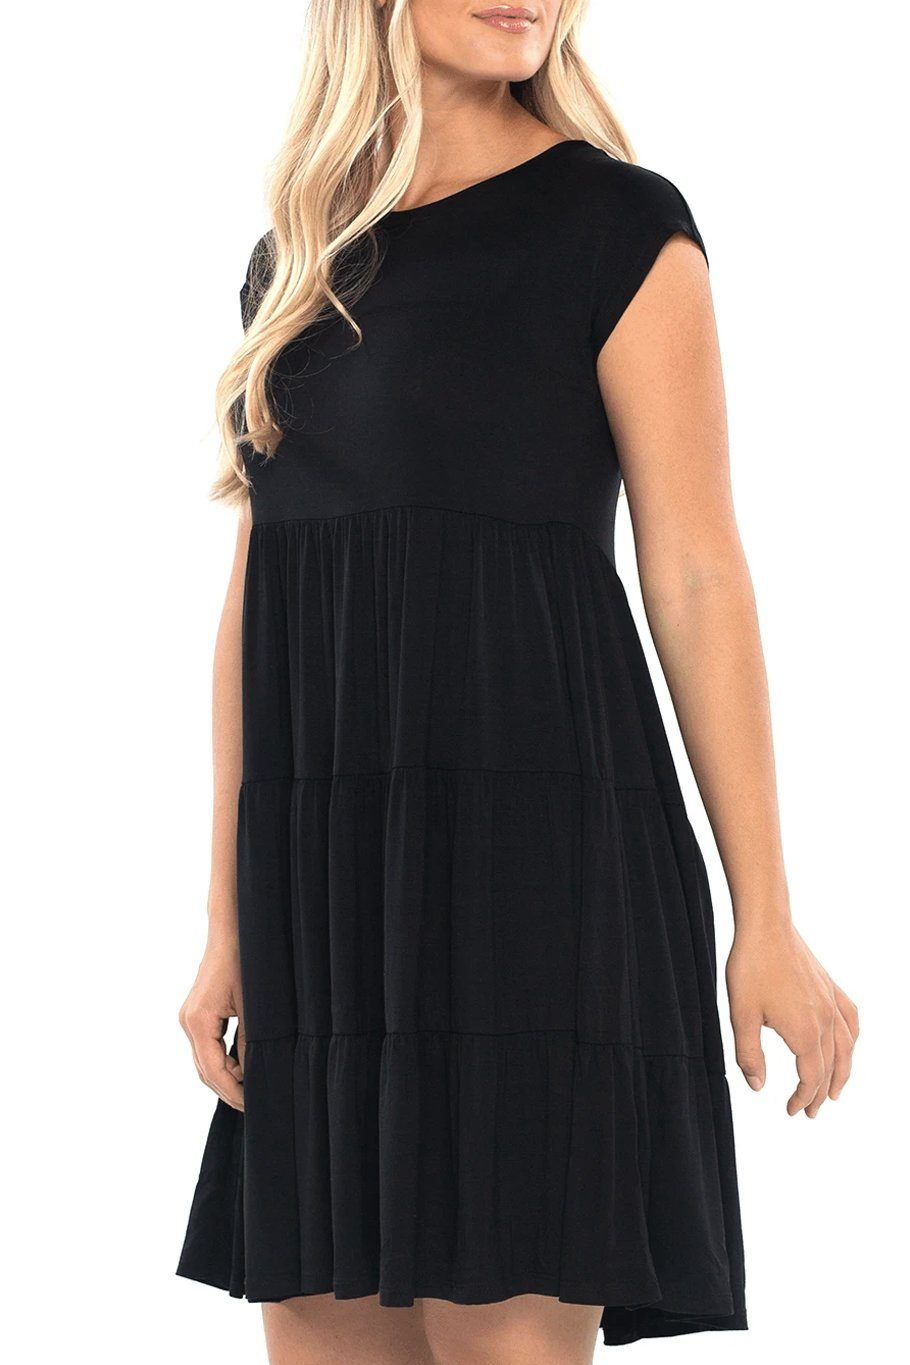 Babydoll Tunic Dress - Black - Shore